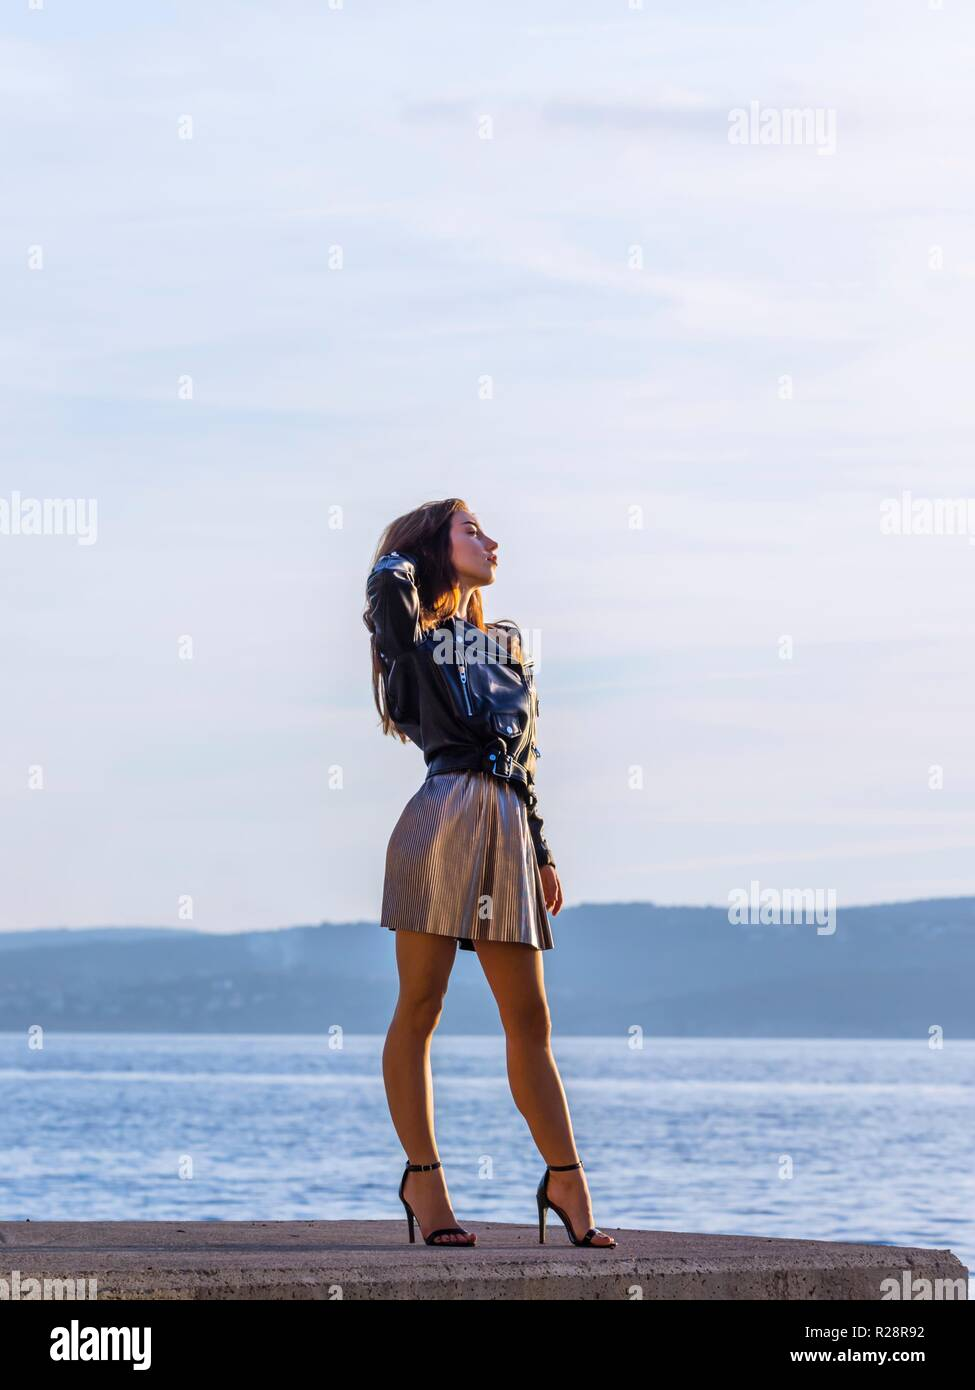 Teen girl self empowerment confident upright young lady ladylike - Stock Image